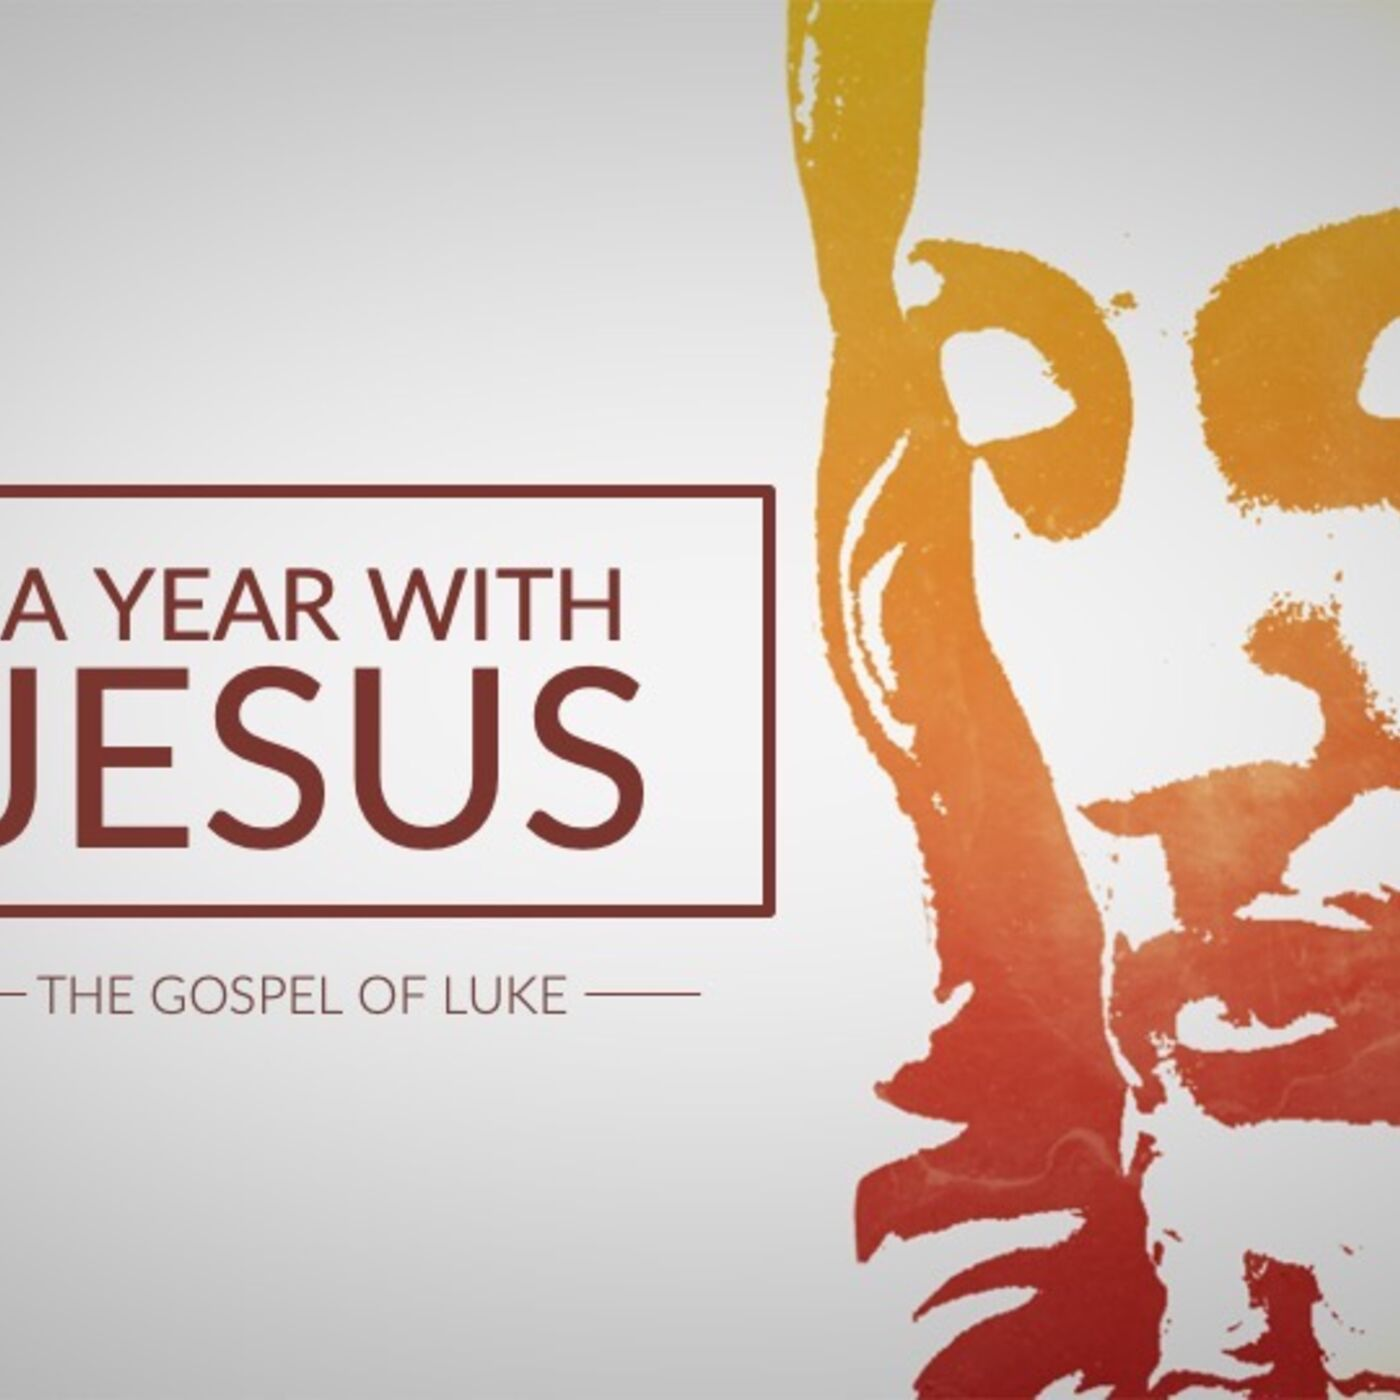 A Year With Jesus: The Cost Of Discipleship (Luke 14:25-35)